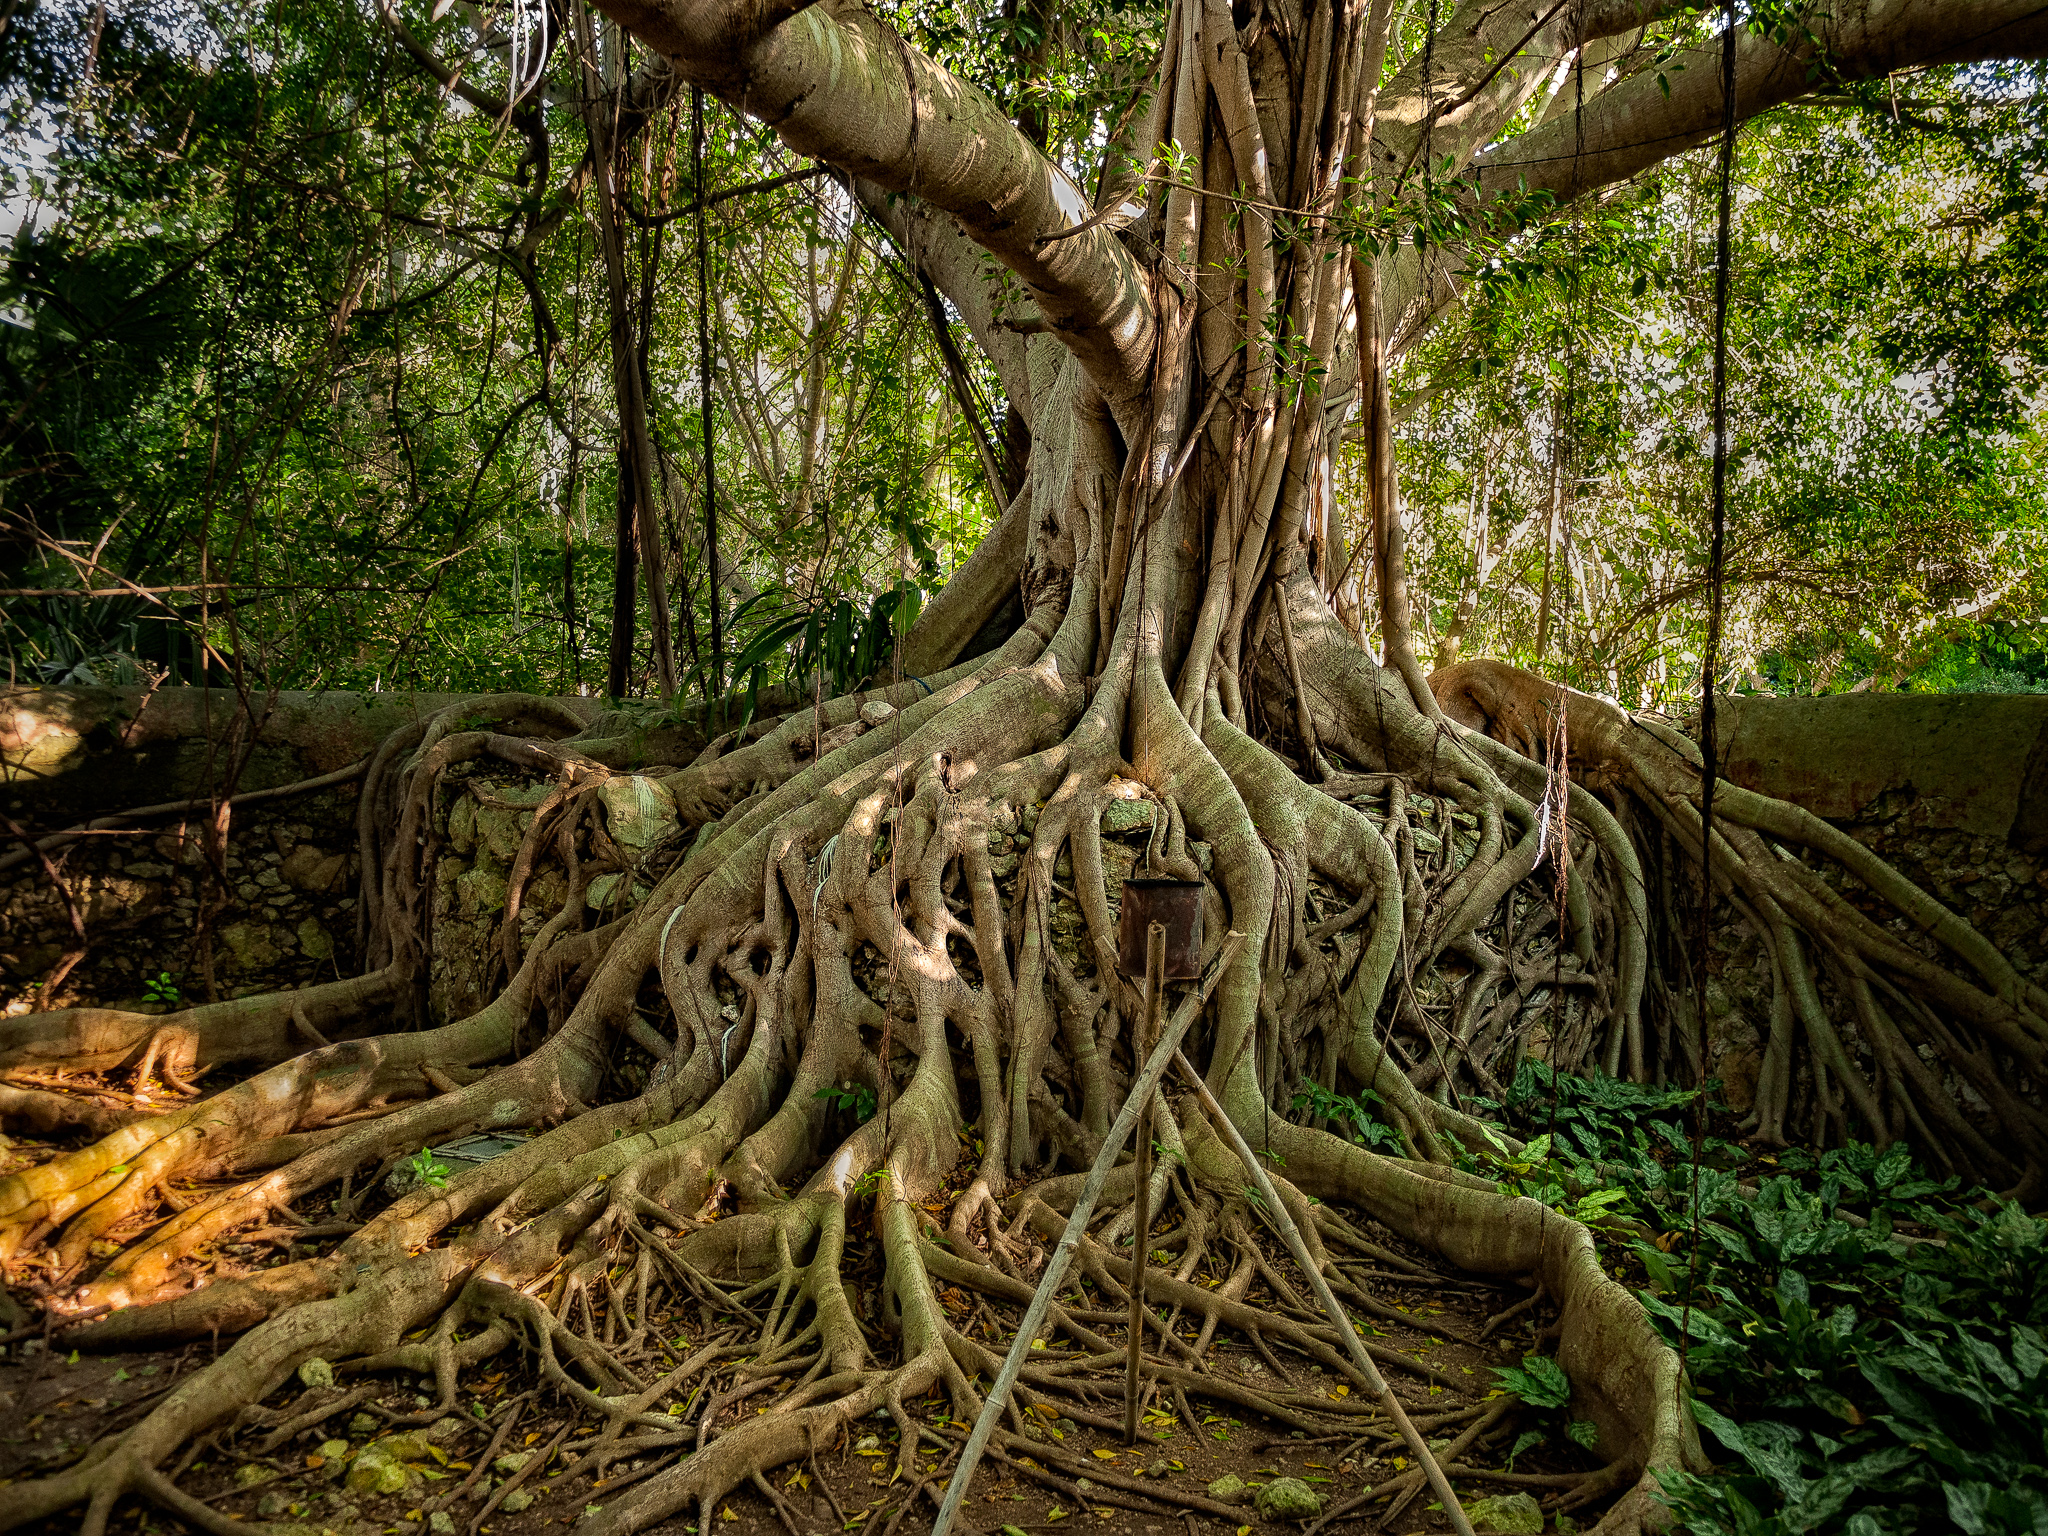 Banyan tree,Hacienda San Jose Cholul, Yucatan, Mexico